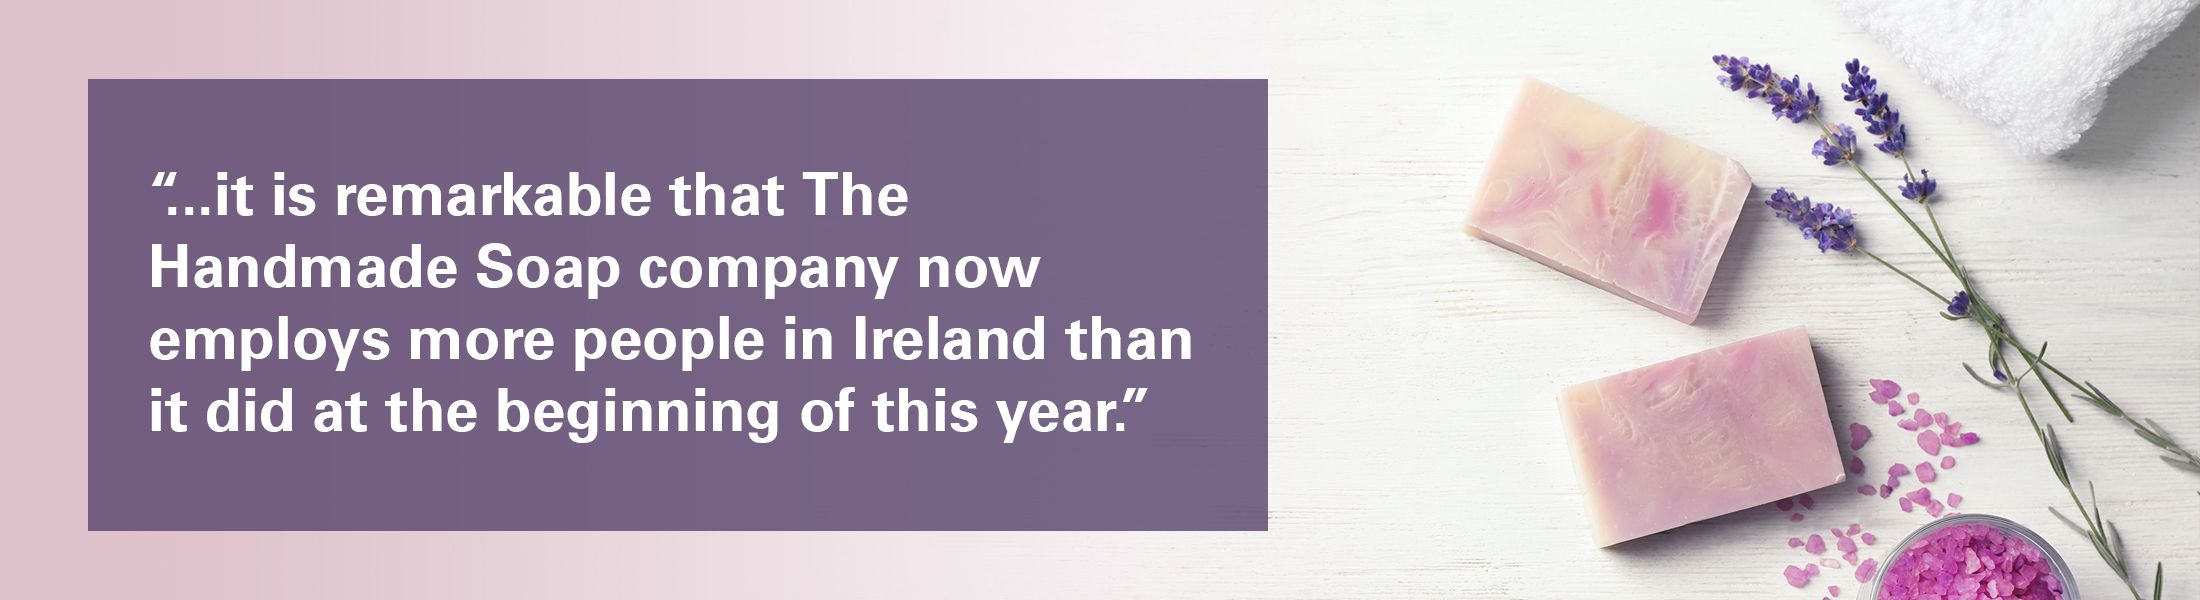 "Handmade soap and lavender overlaid with the text ""SMEs are the backbone of our economy and it is remarkable that The Handmade Soap company now employs more people in Ireland than it did at the beginning of this year."""